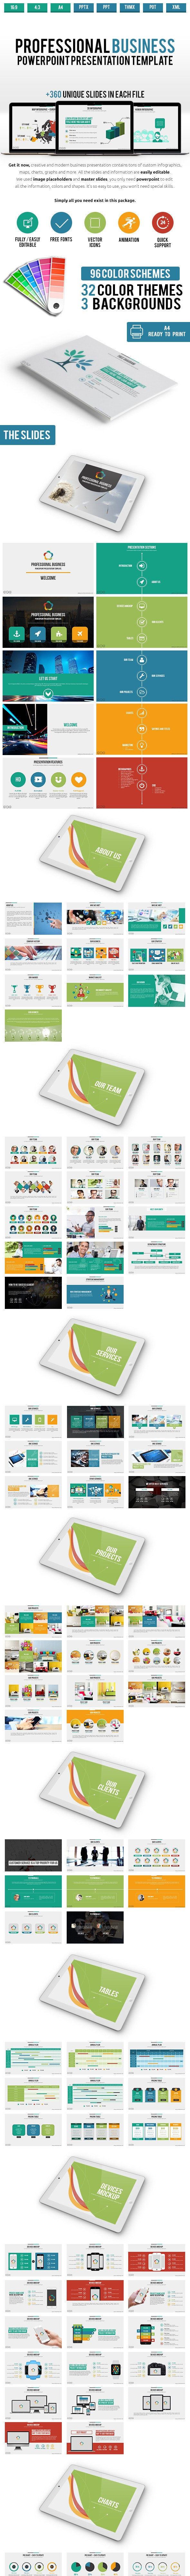 Professional Business PowerPoint Presentation - Business PowerPoint Templates